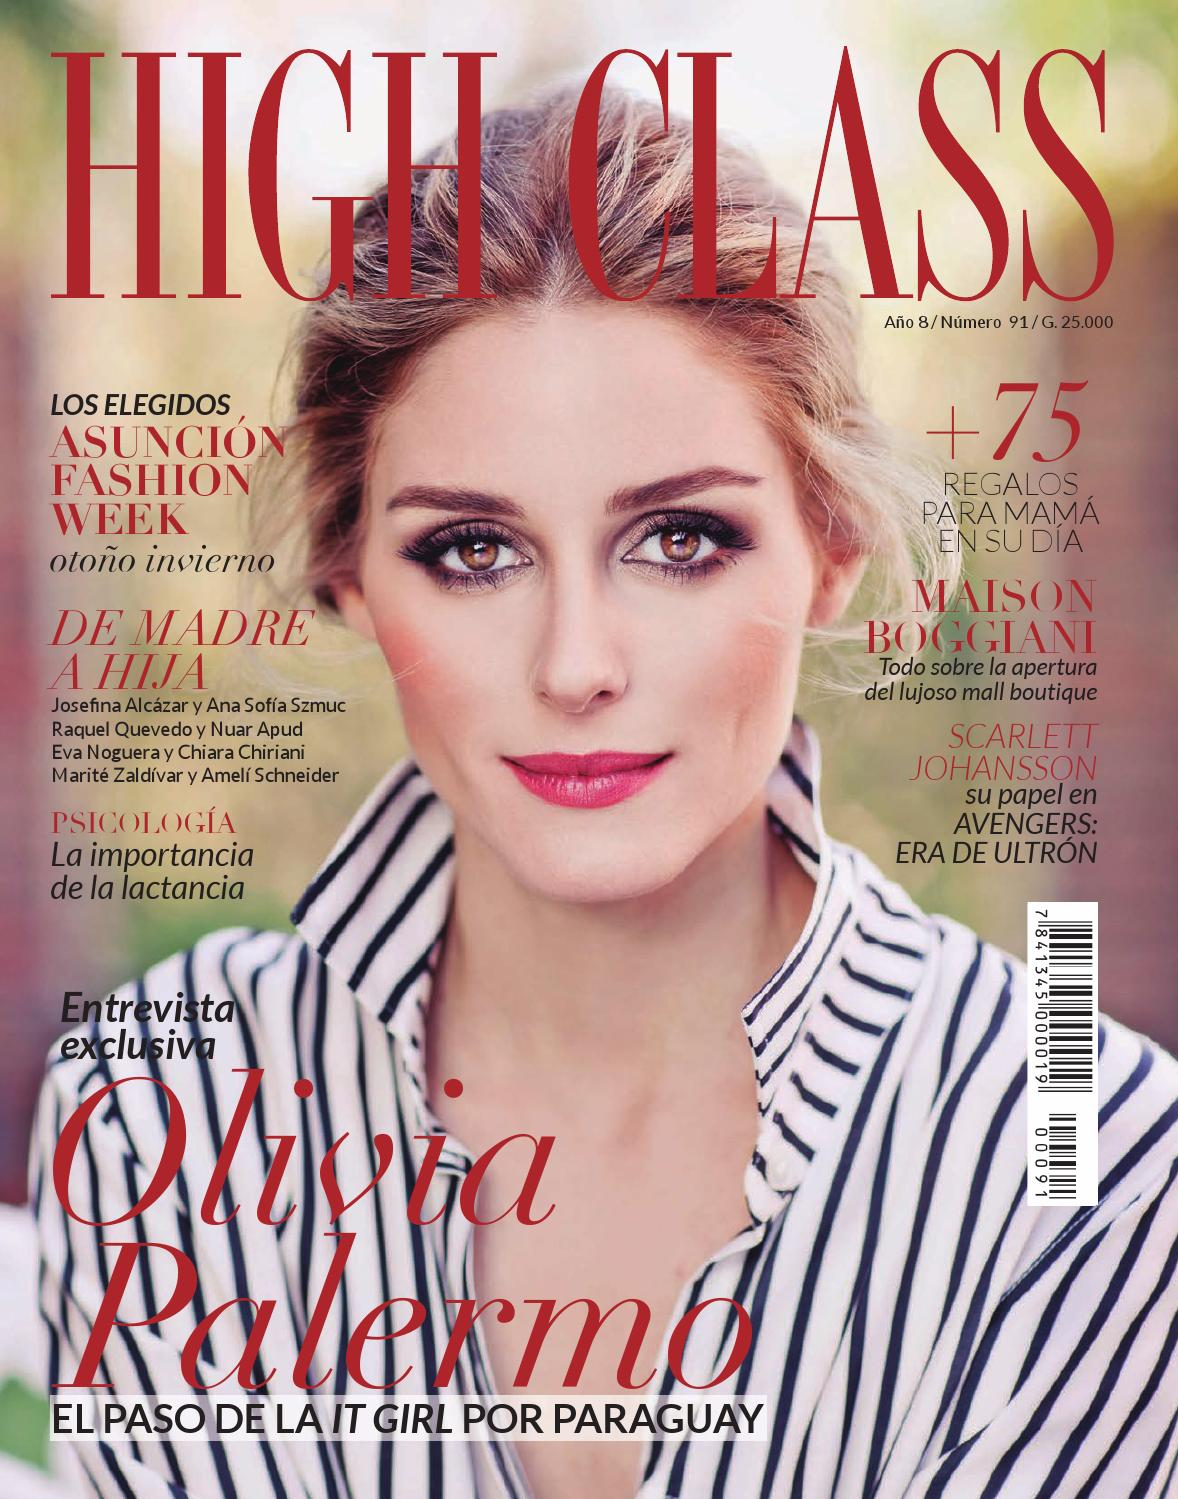 High Class de mayo 2015 by Revista High Class - issuu